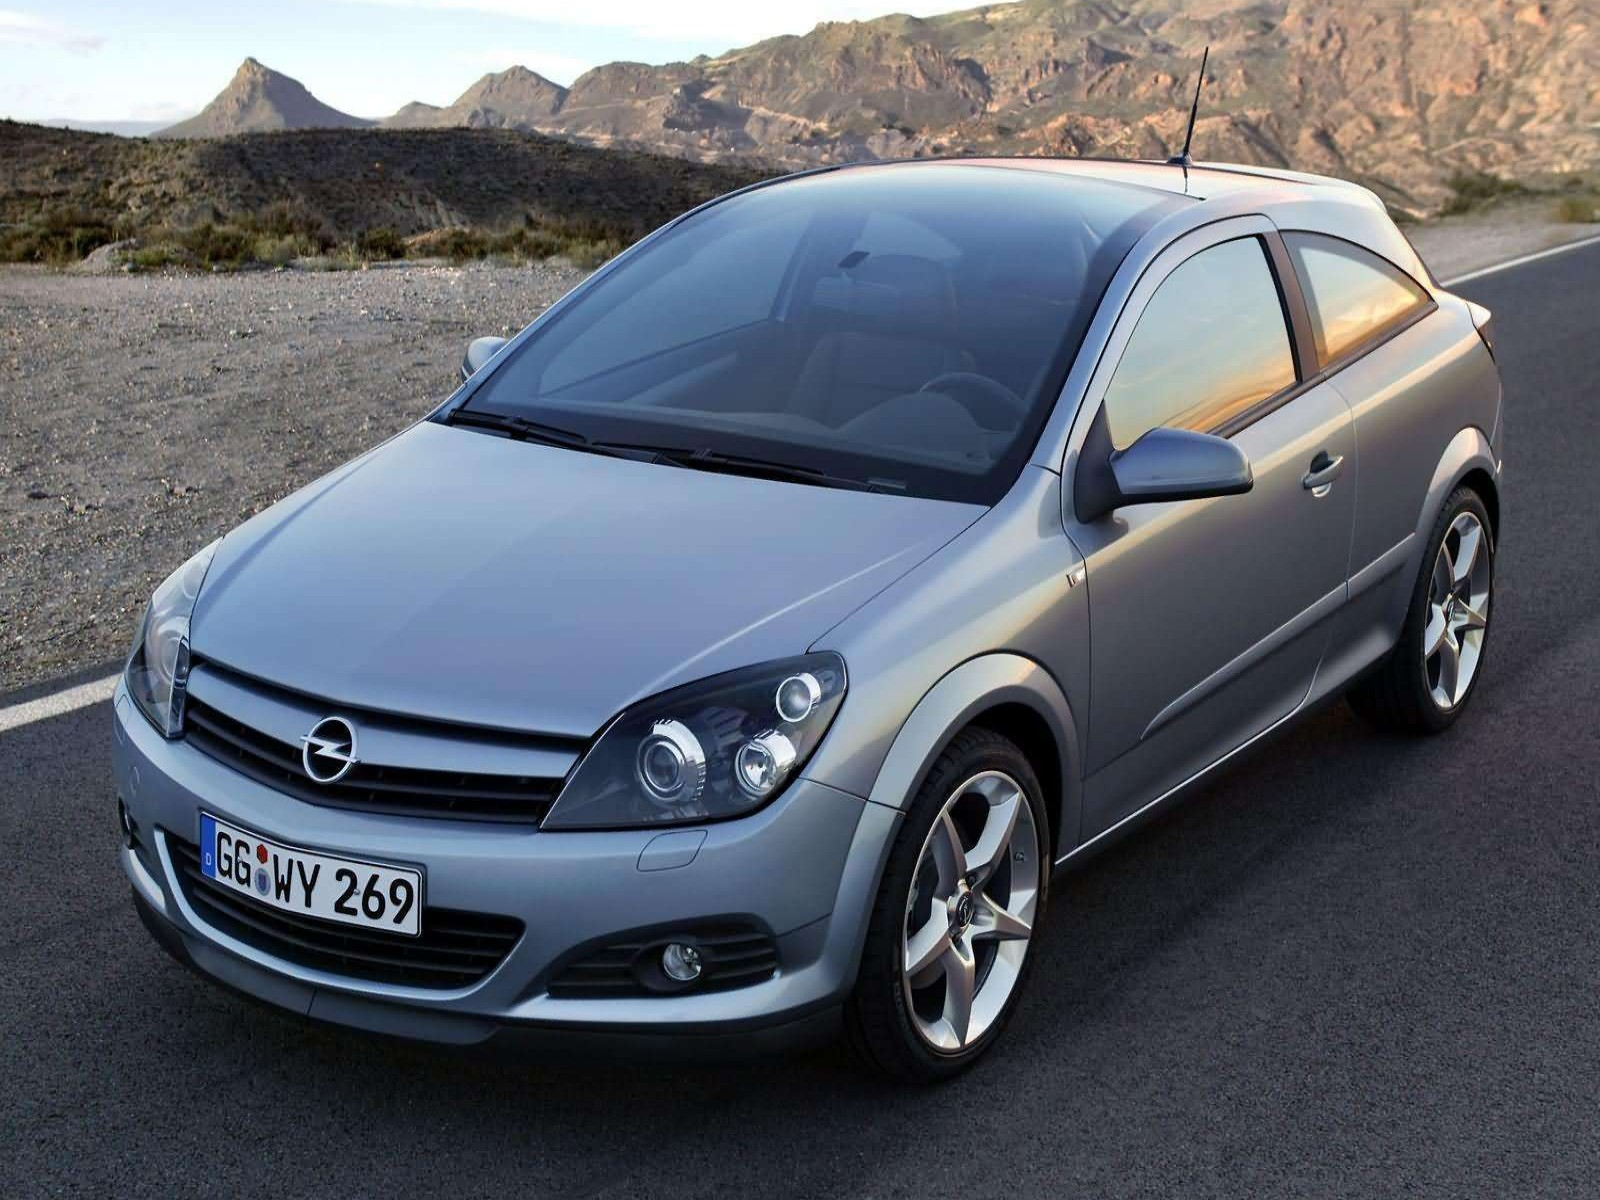 2005 opel astra gtc 1 8 related infomation specifications weili automotive network. Black Bedroom Furniture Sets. Home Design Ideas